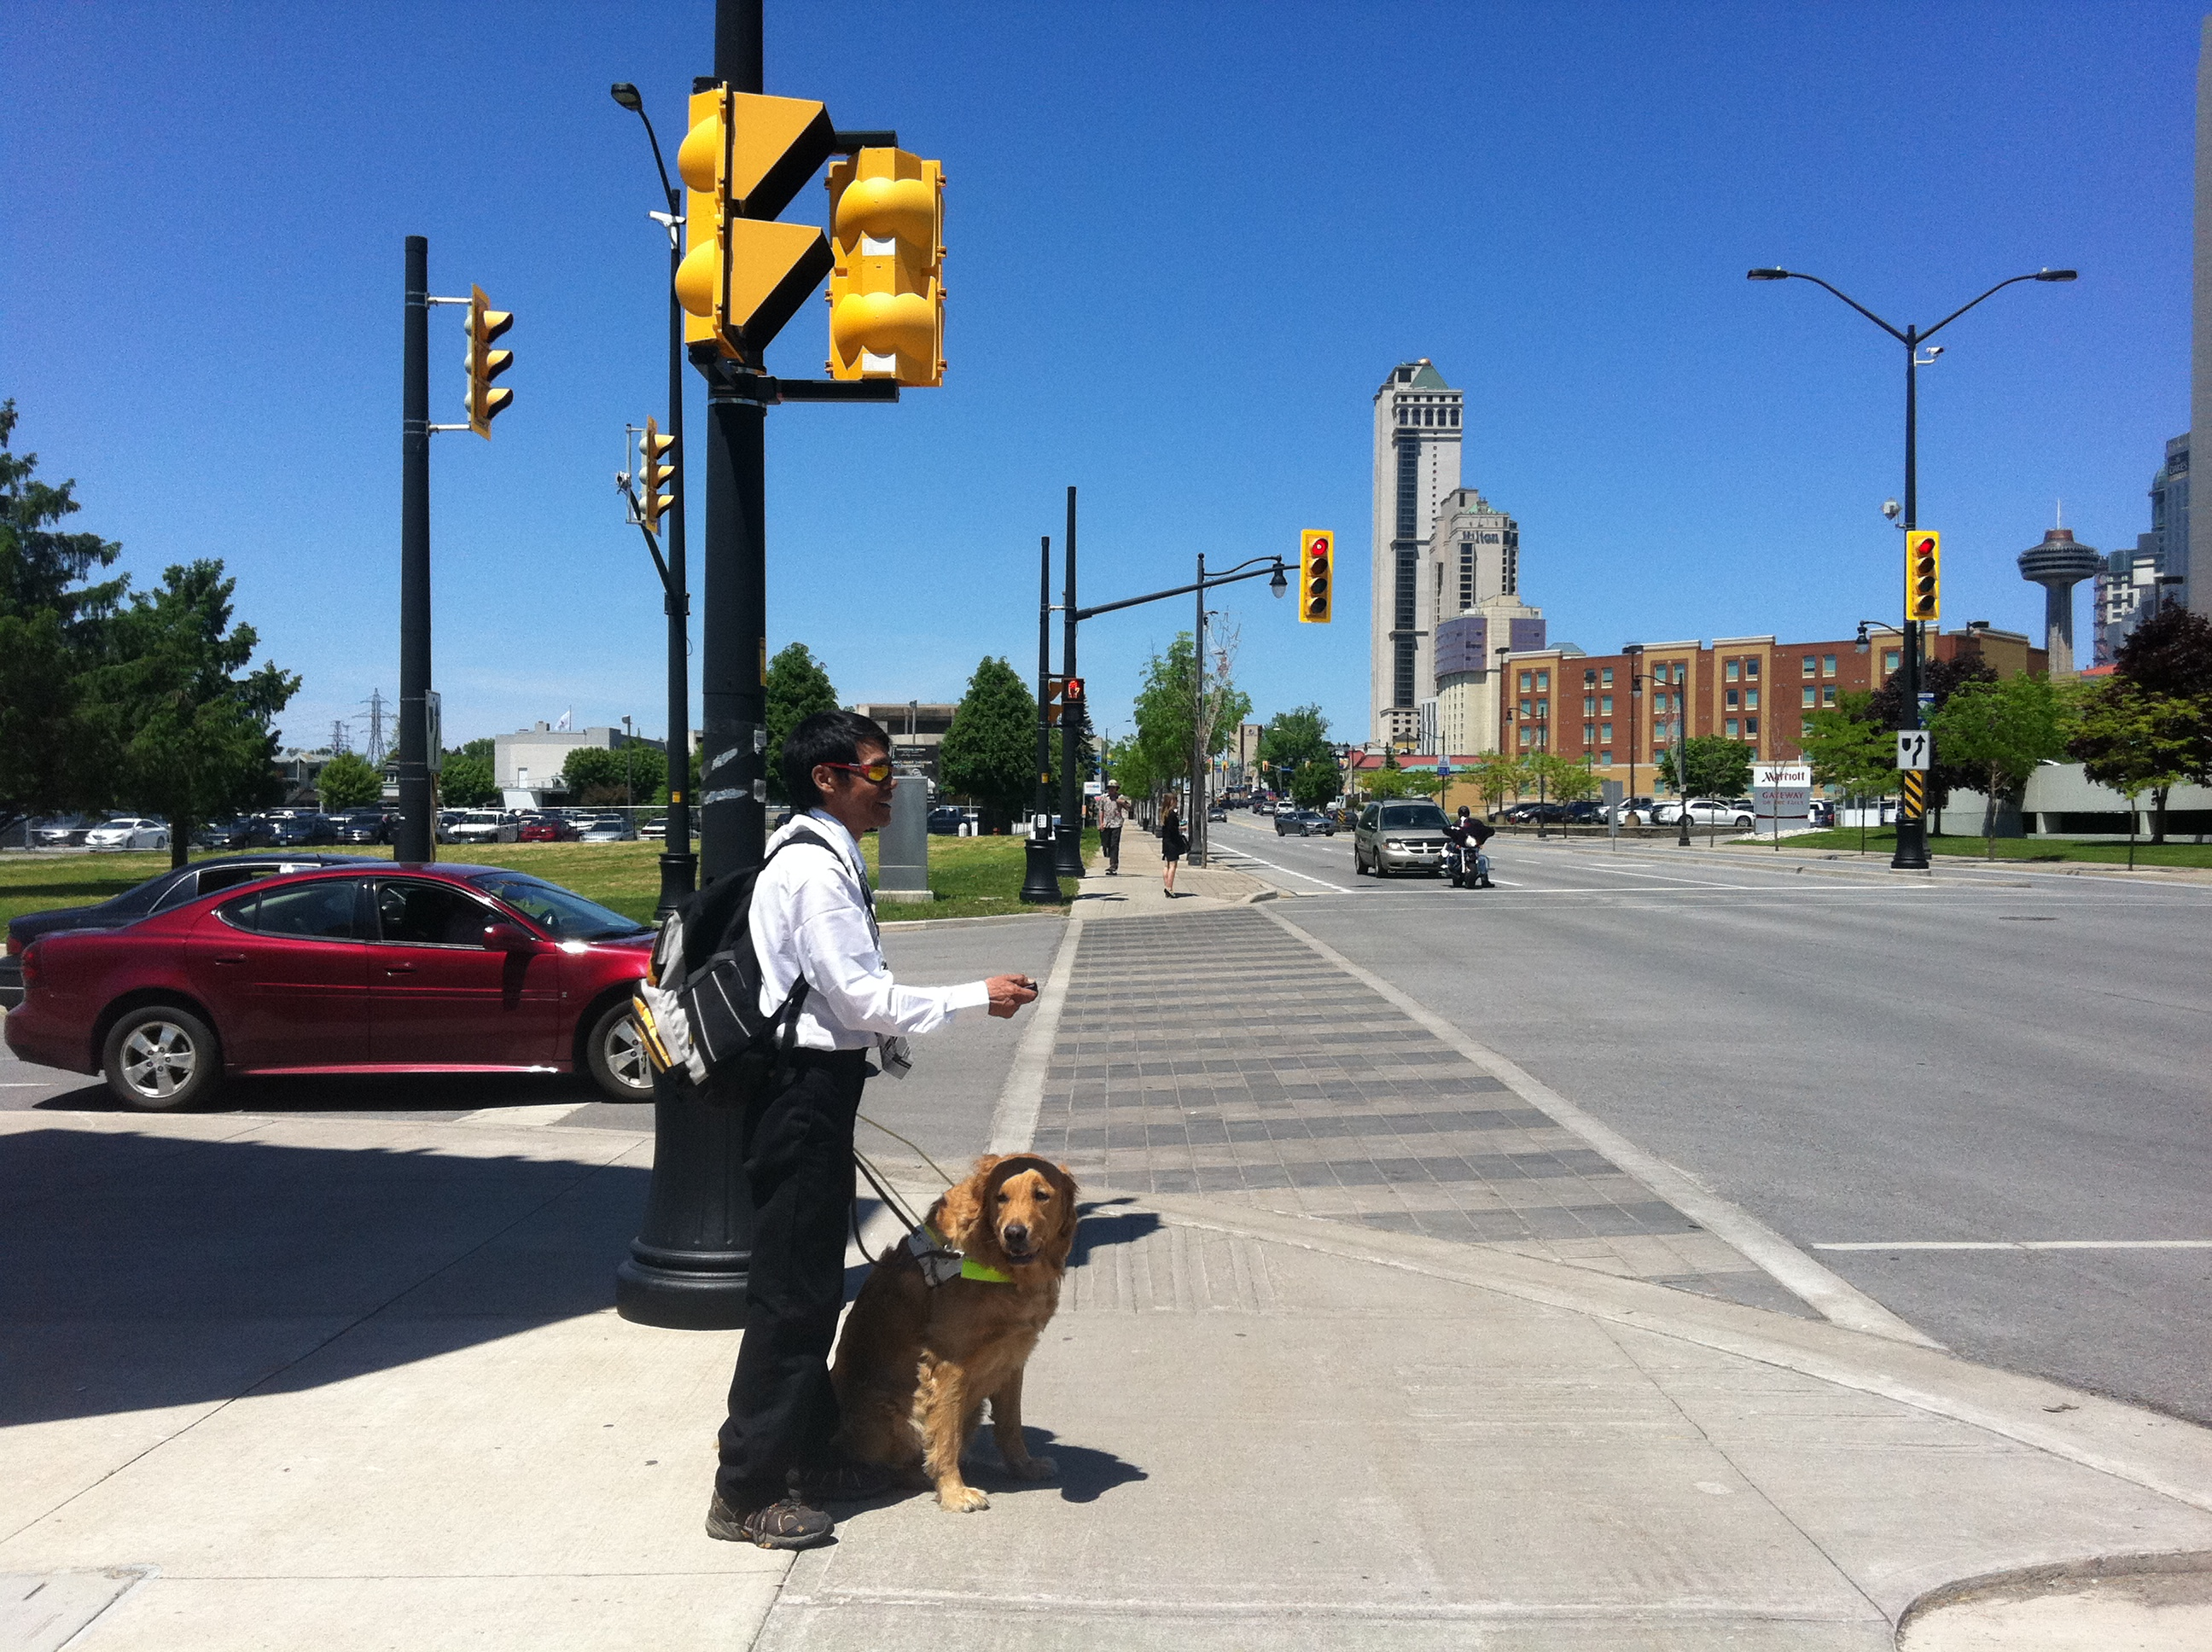 Picture of visually impaired pedestrian with guide dog using ta key2access fob to request crossing at an intersection